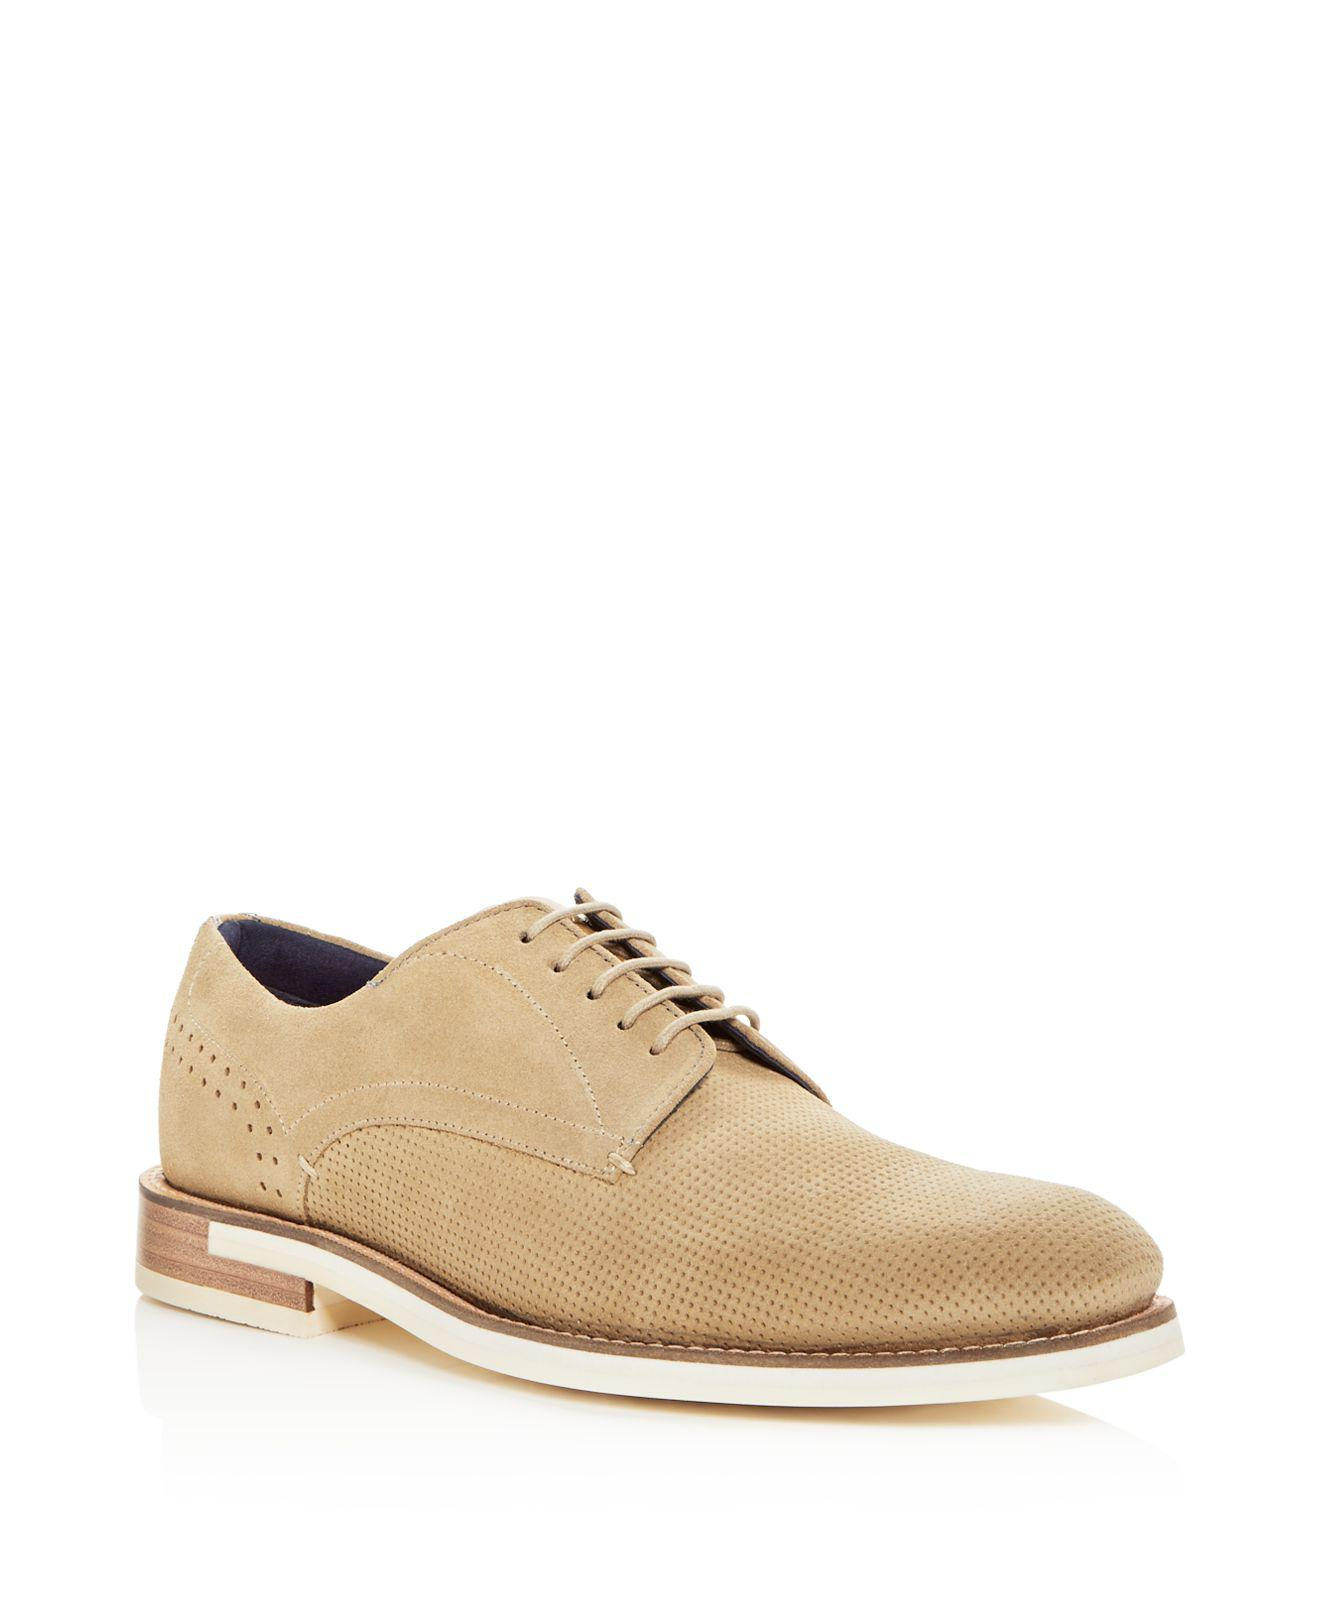 Ted Baker Men's Lapiin Embossed Plain Toe Derby